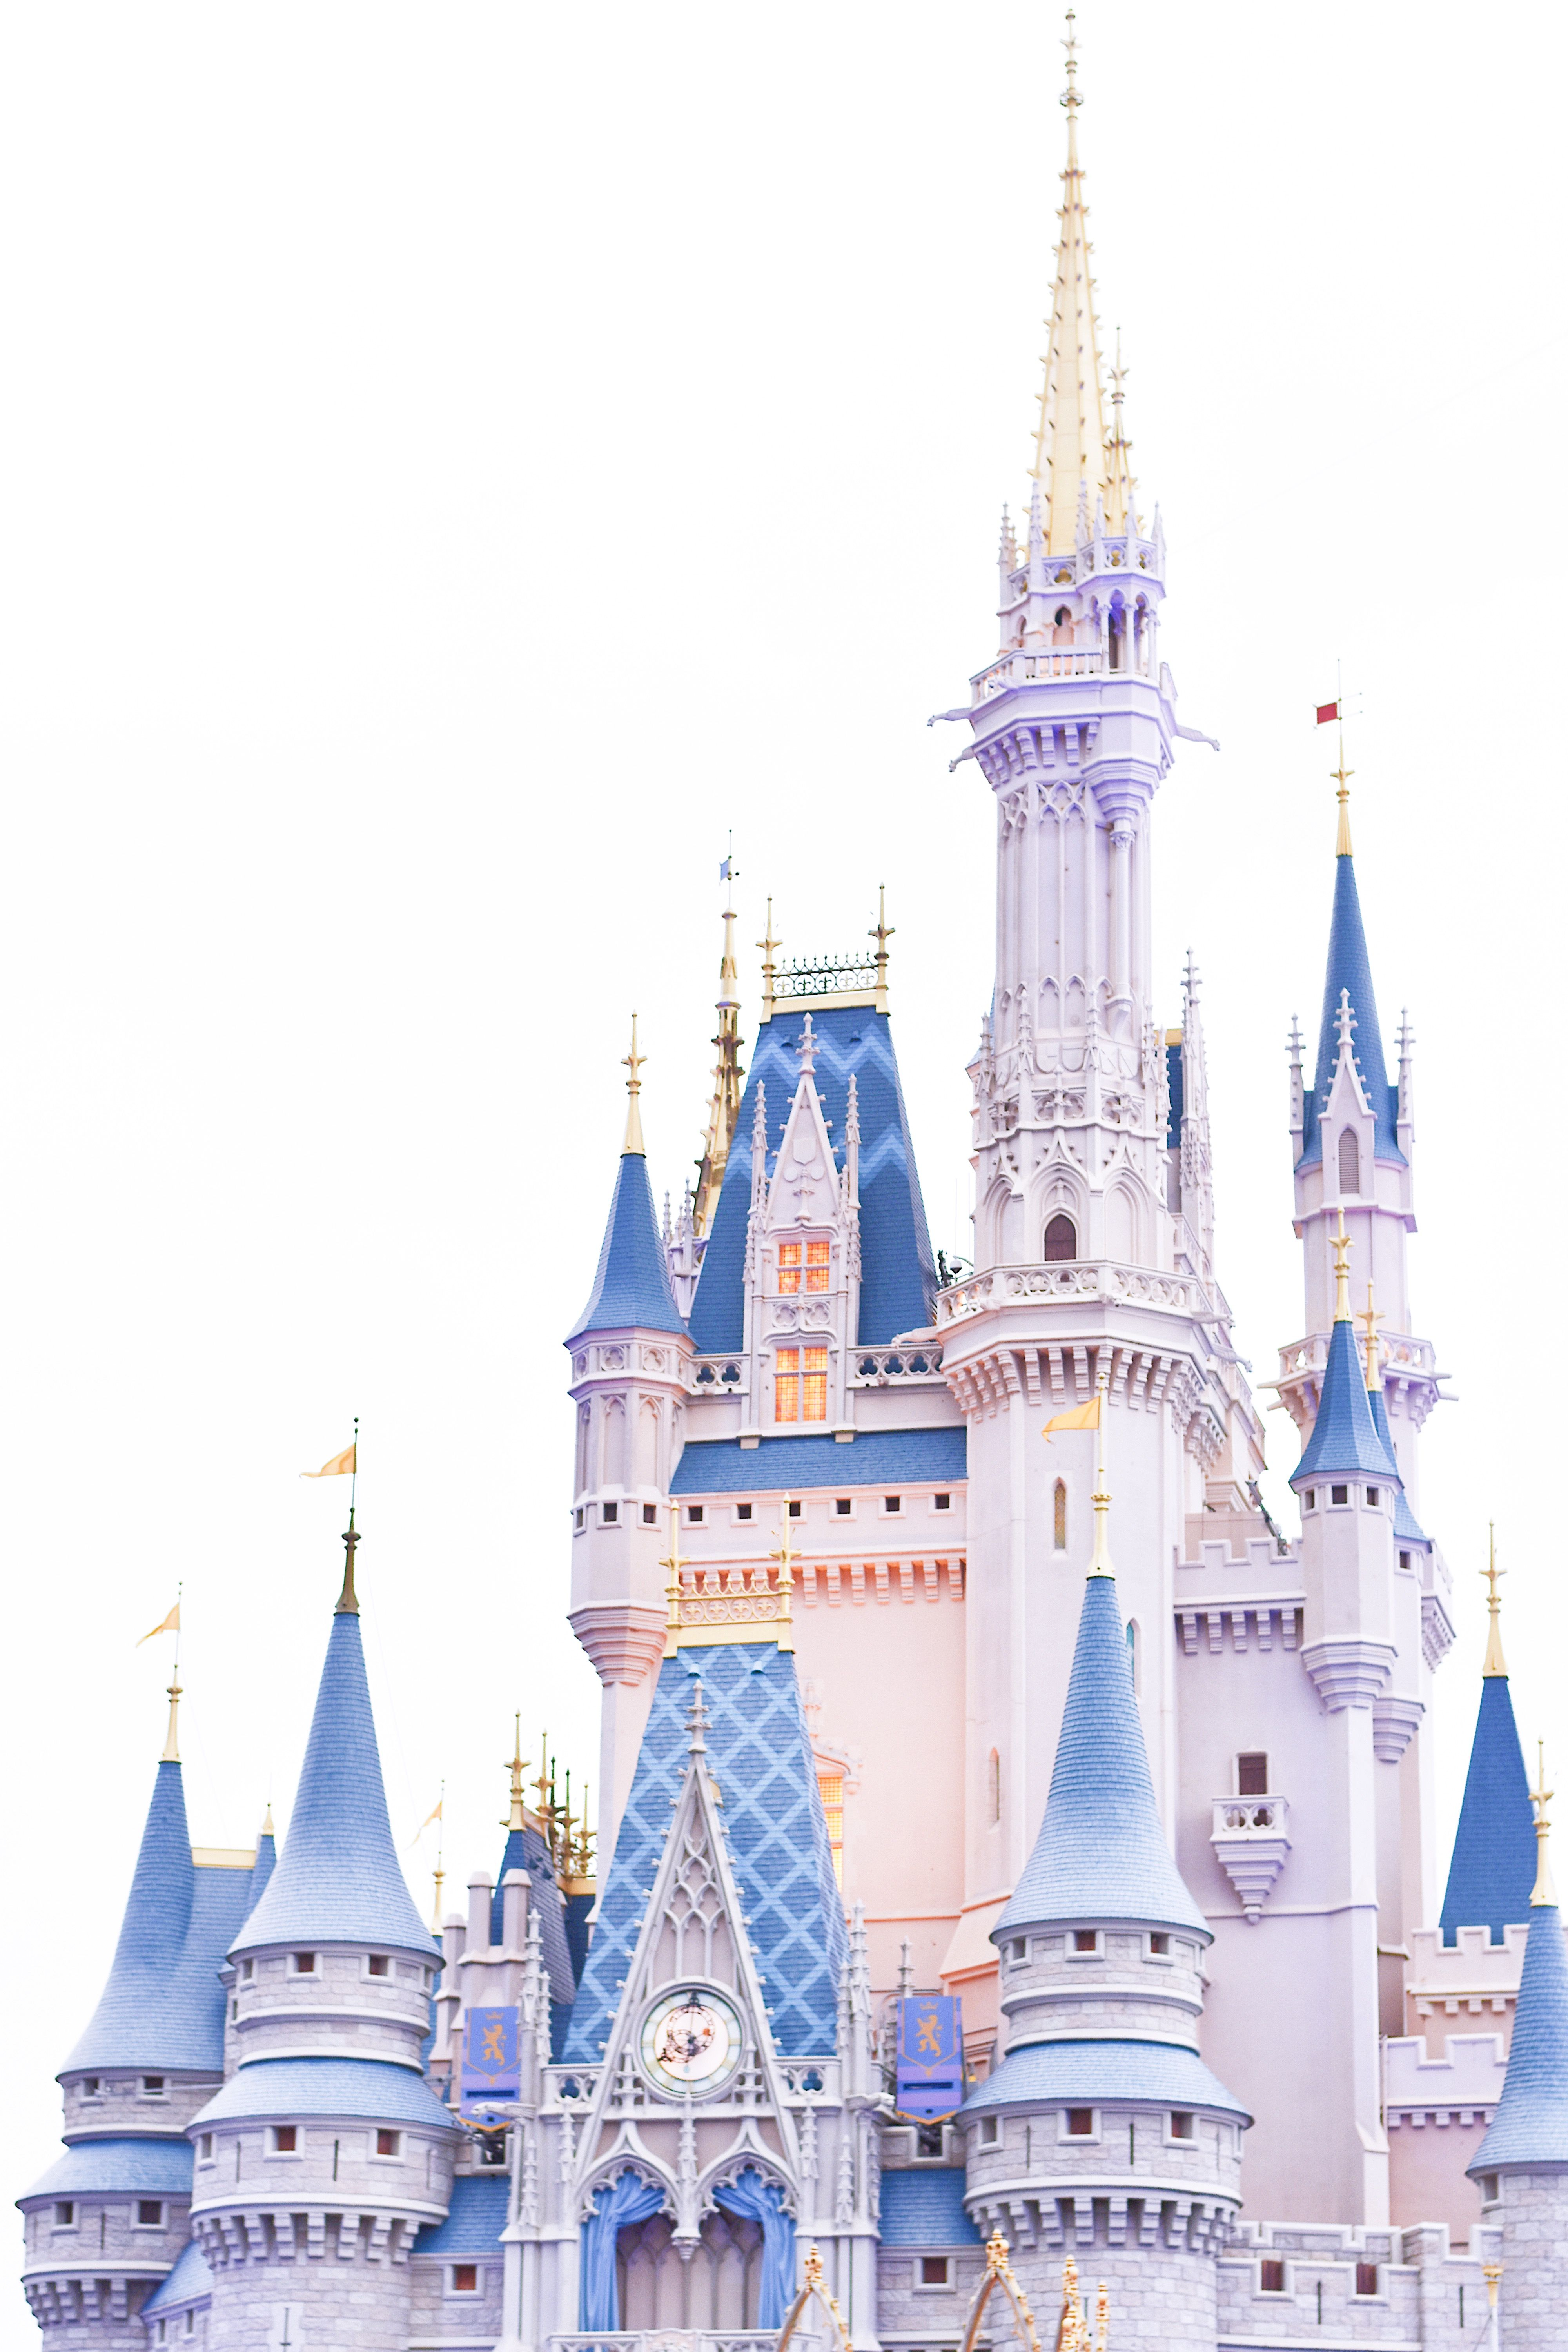 At The Magic Kingdom For The Magical Views Even On The Gloomiest Days Waltdisneyworld Wallpaper Iphone Disney Princess Disney Castle Walt Disney Castle